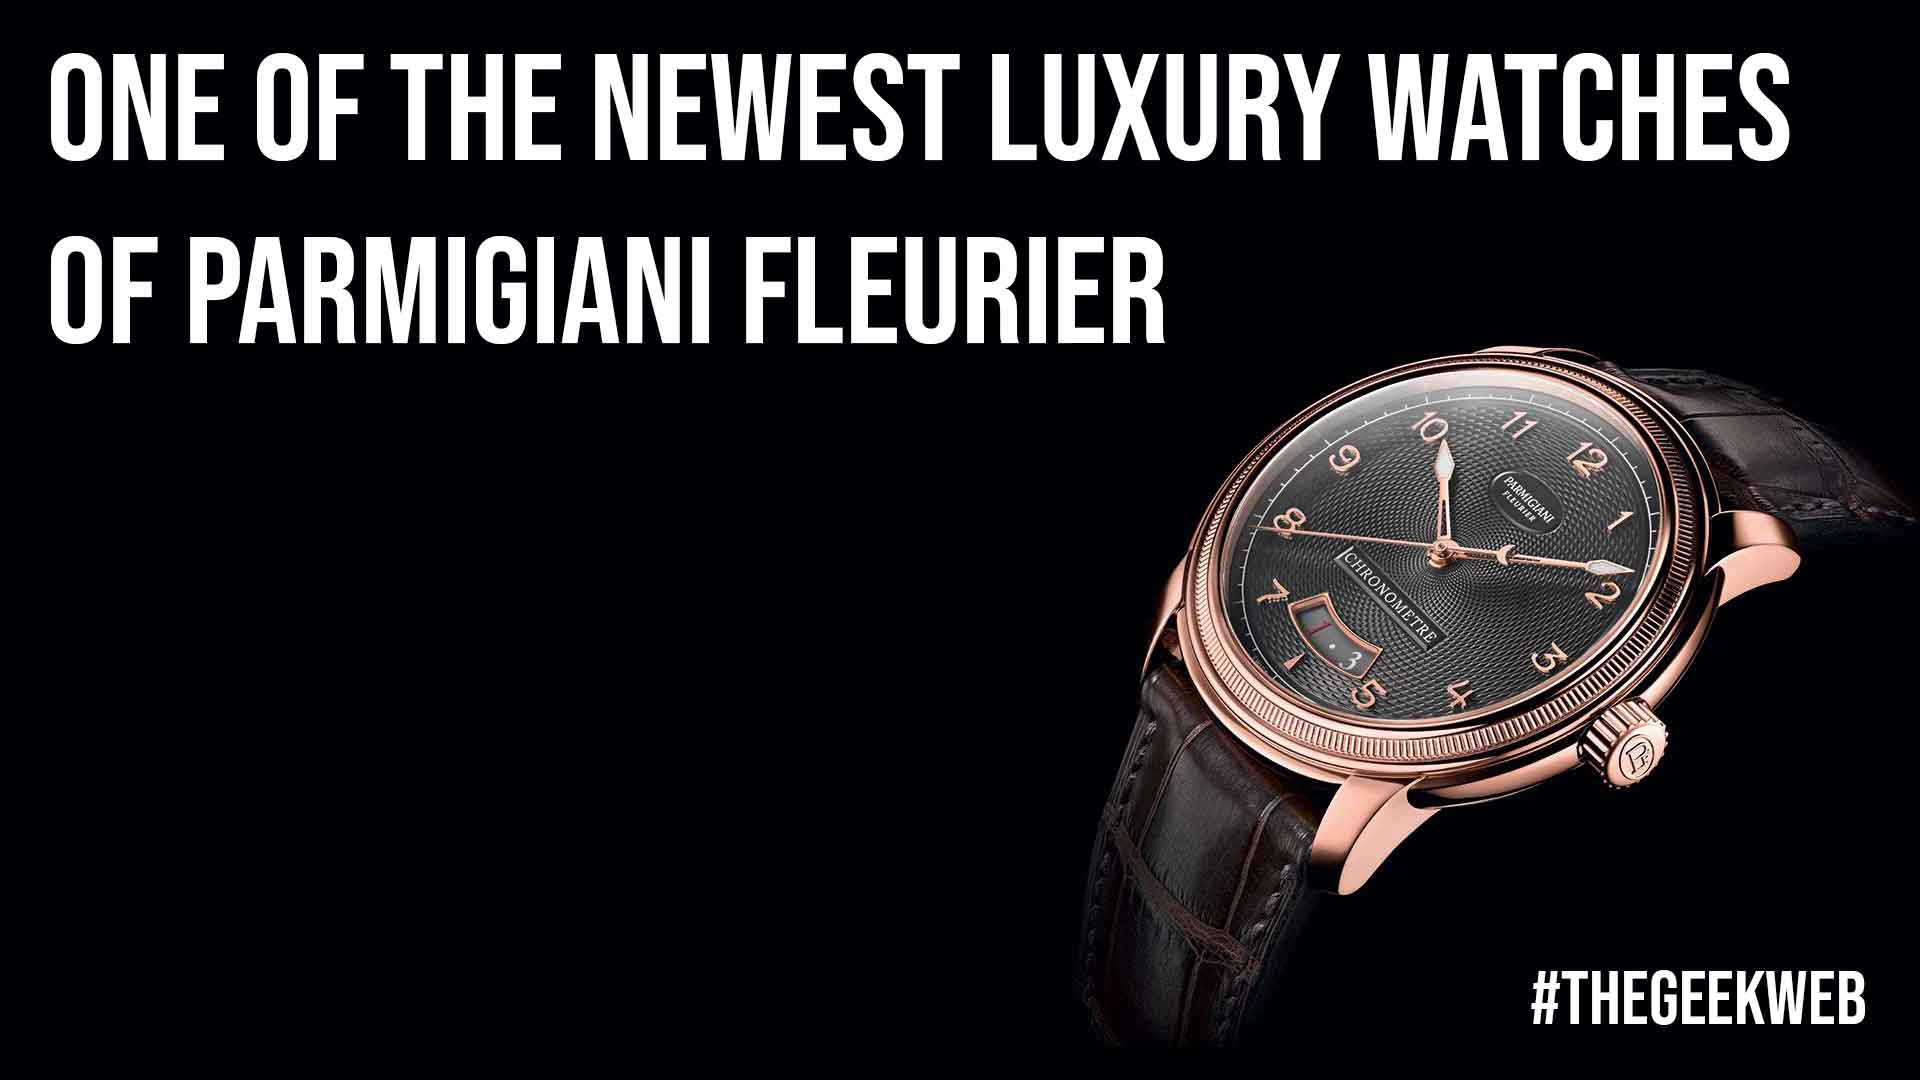 One Of The Newest Luxury Watches Of Parmigiani Fleurier